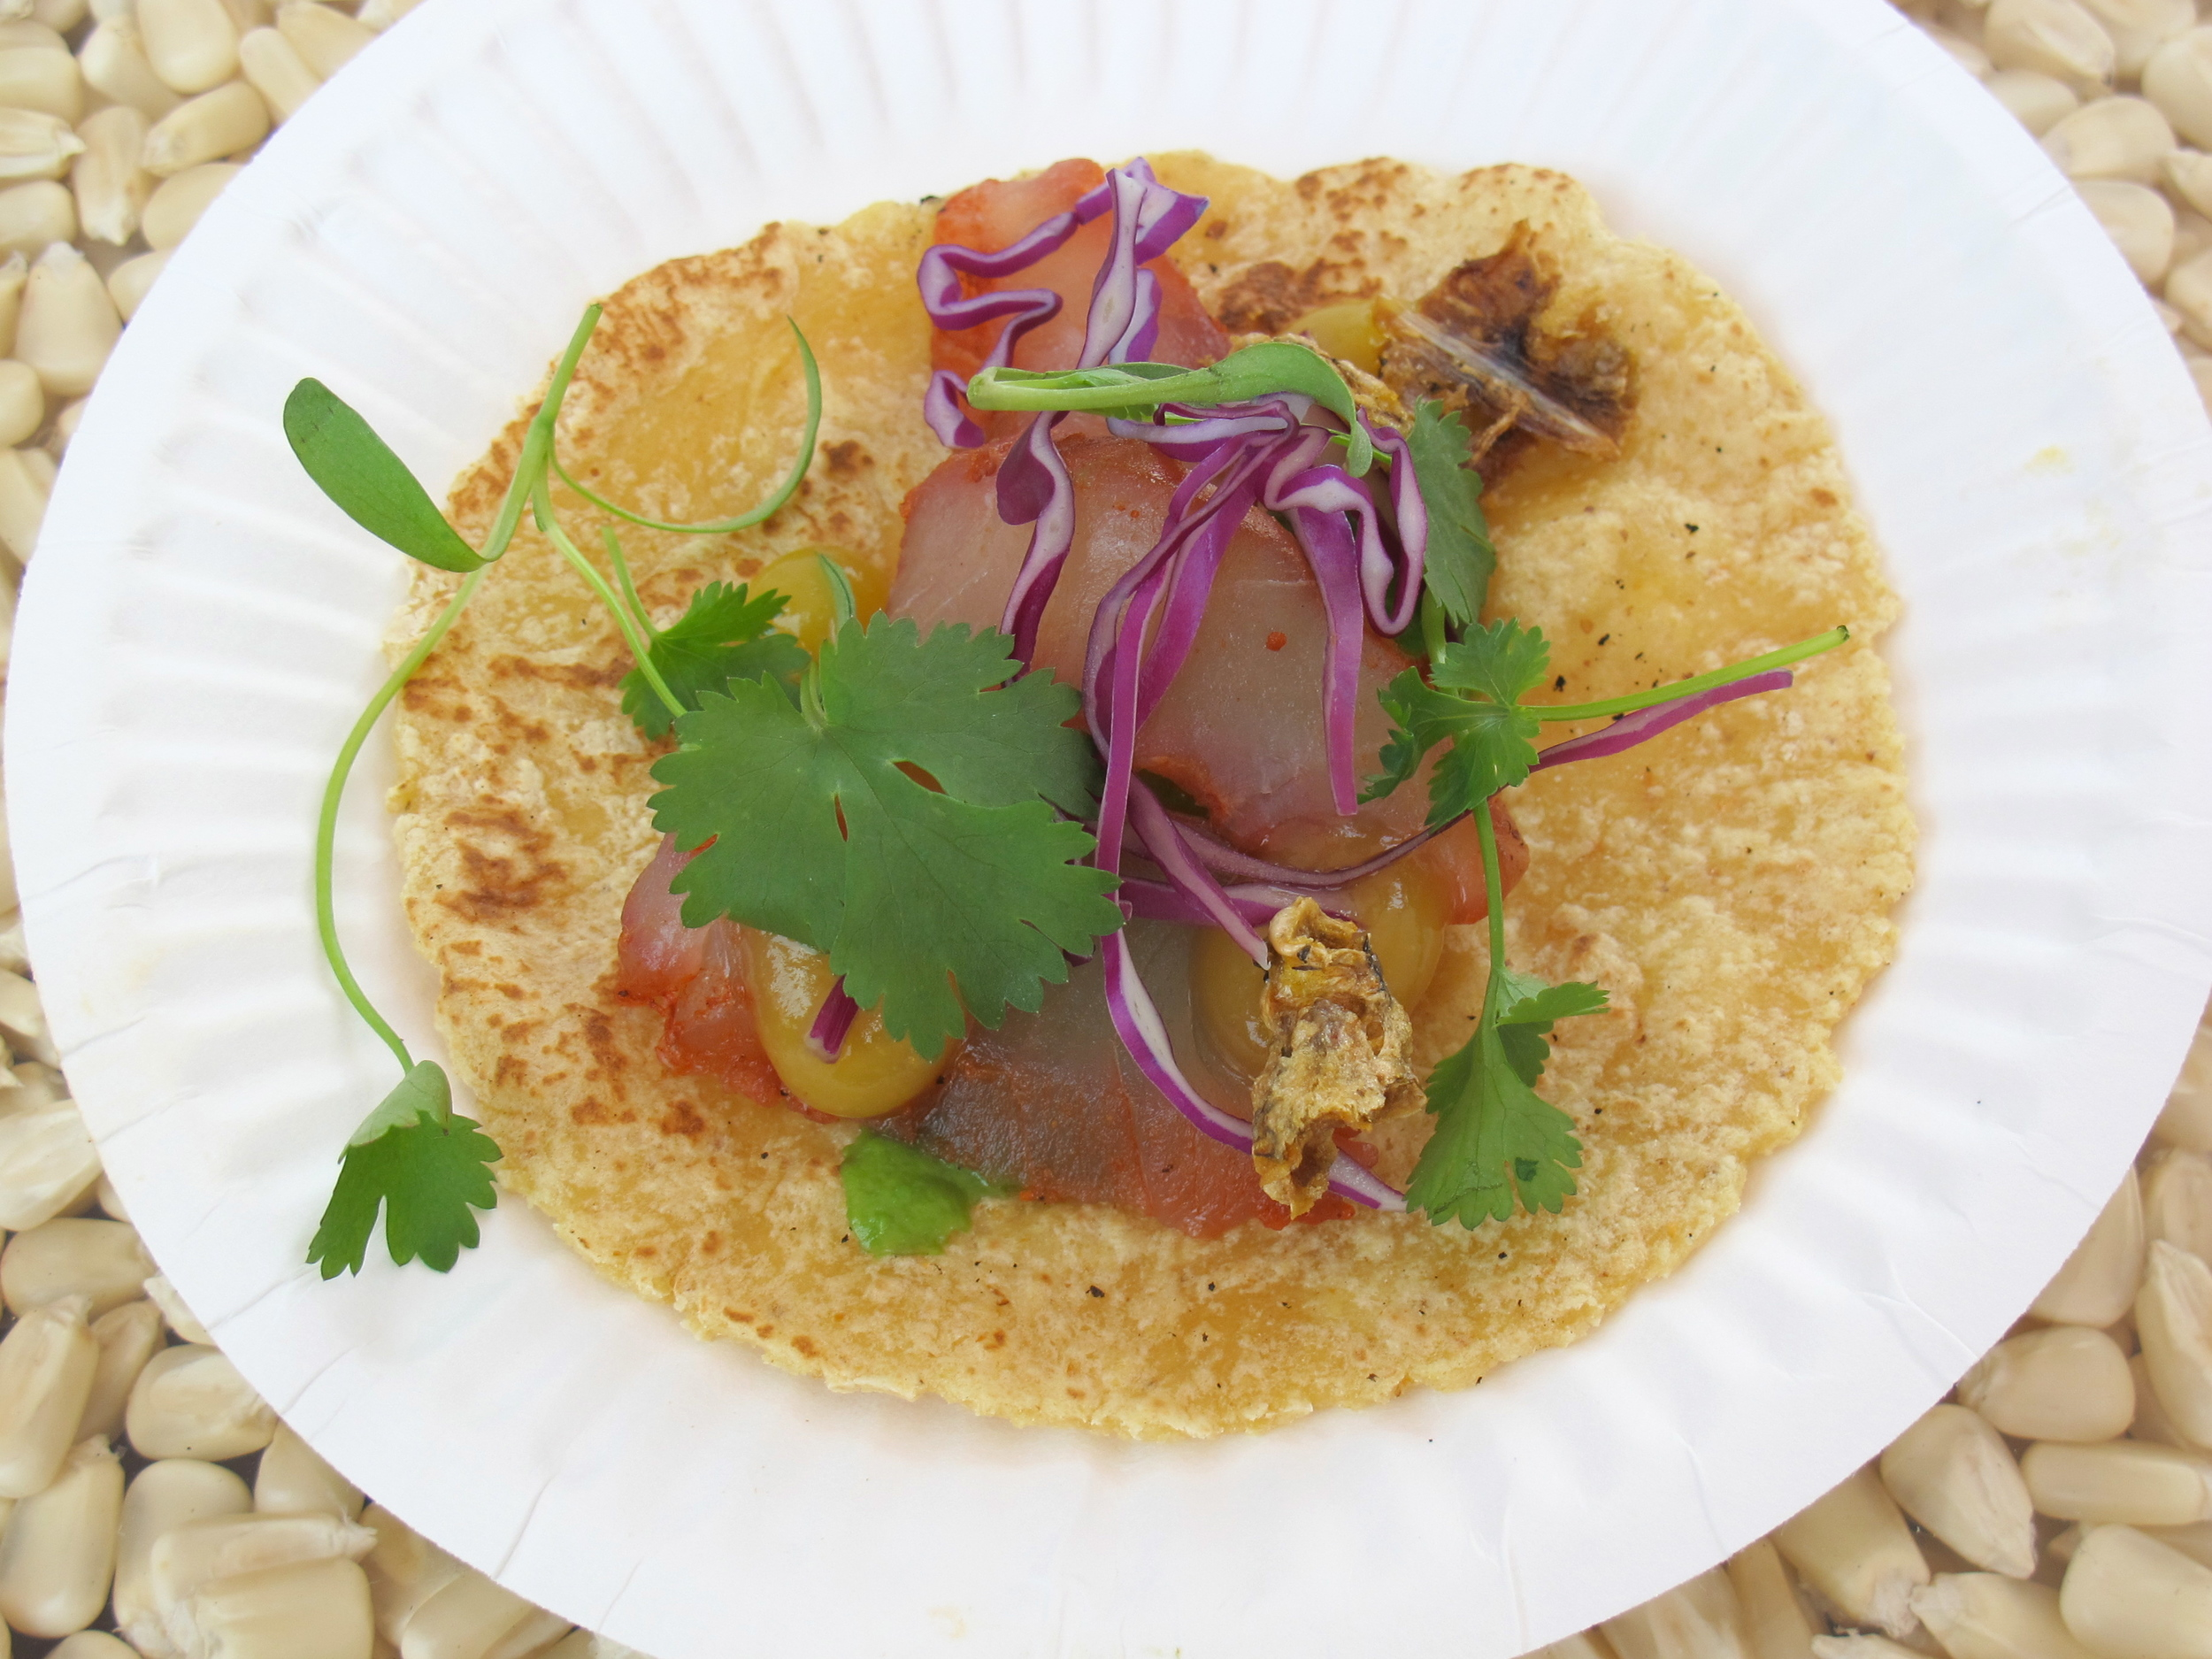 George's at the Cove's cured snapped taco